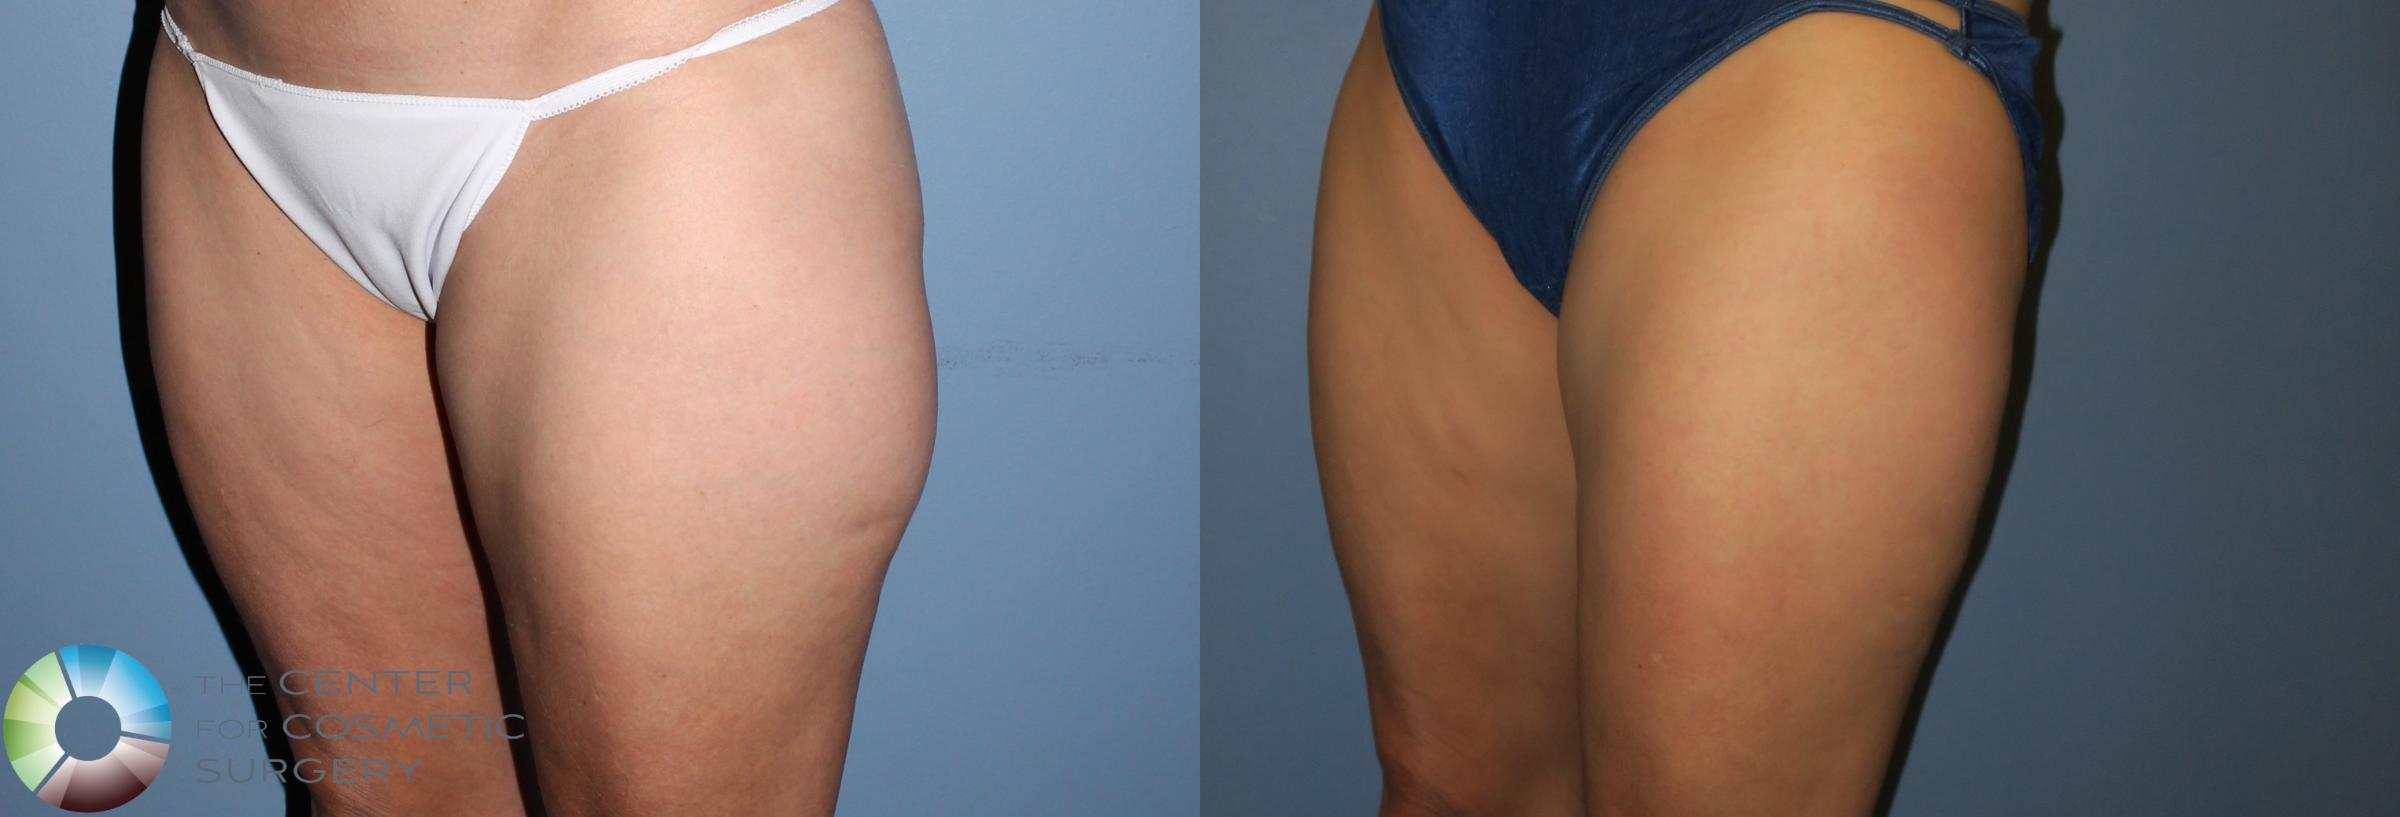 Liposuction Case 819 Before & After View #2 | Golden, CO | The Center for Cosmetic Surgery